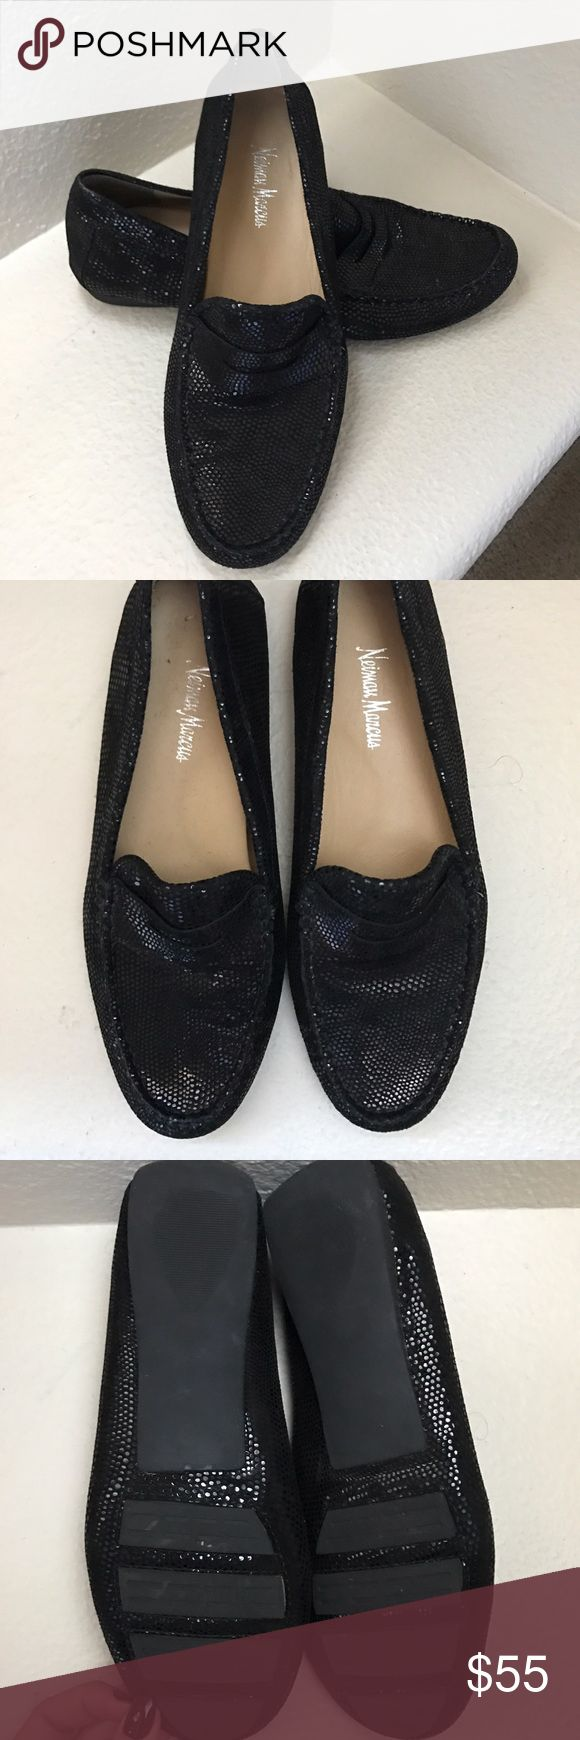 Neiman Marcus driving moccasin Black Neiman Marcus women's size 8 driving moccasin. NWOT. Never worn. Perfect condition. Neiman Marcus Shoes Flats & Loafers